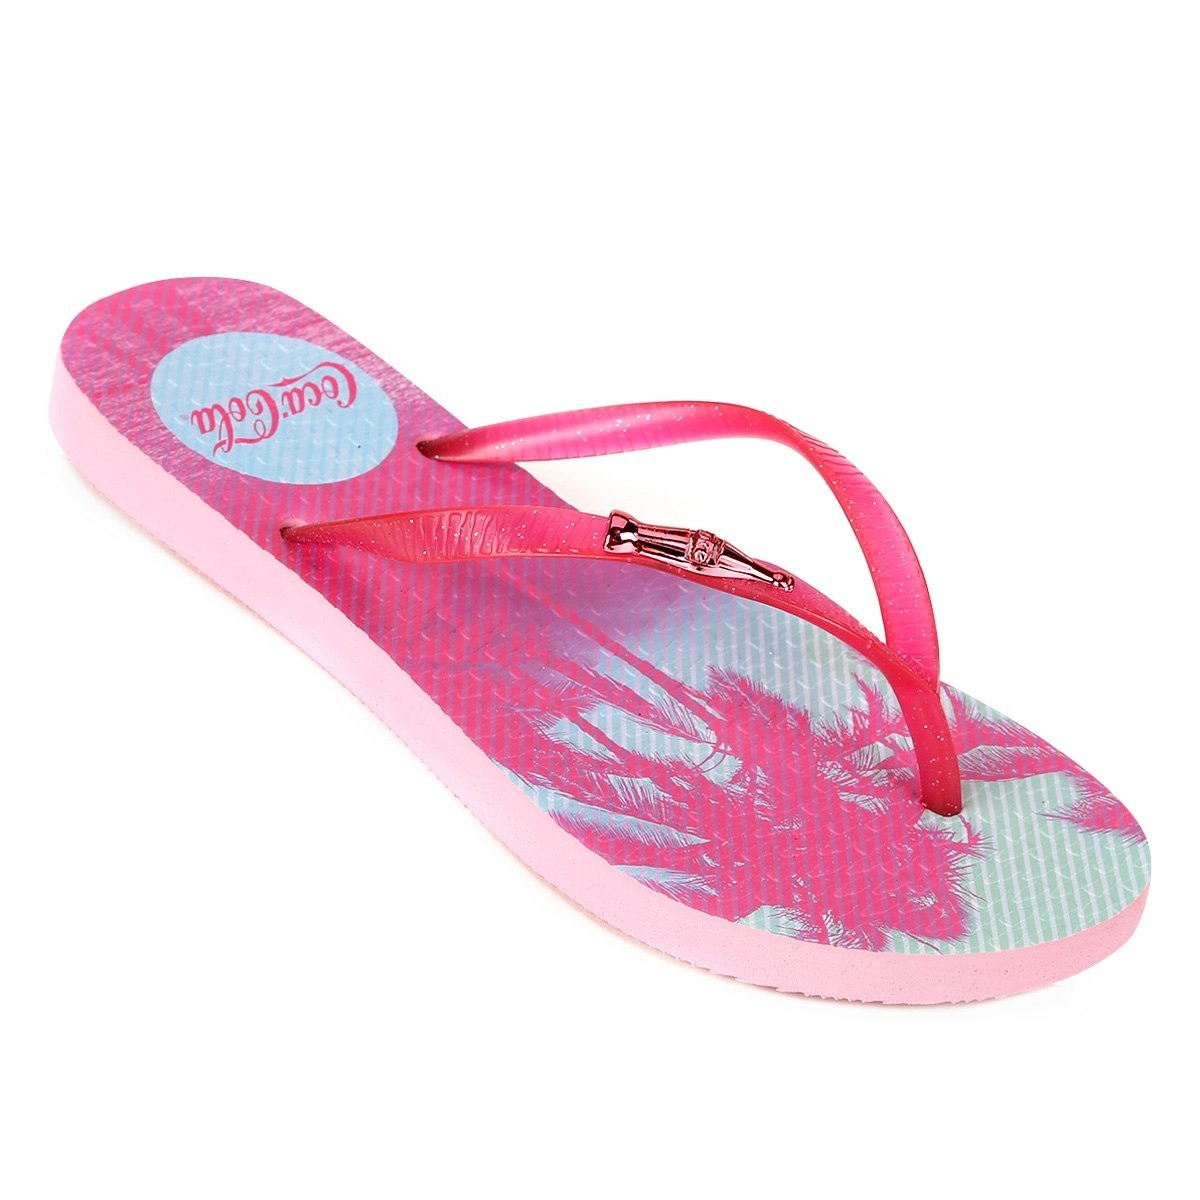 38deb8a48 Chinelo Coca-cola Bloom Stripes Feminino - Preto Original - R$ 64,99 ...